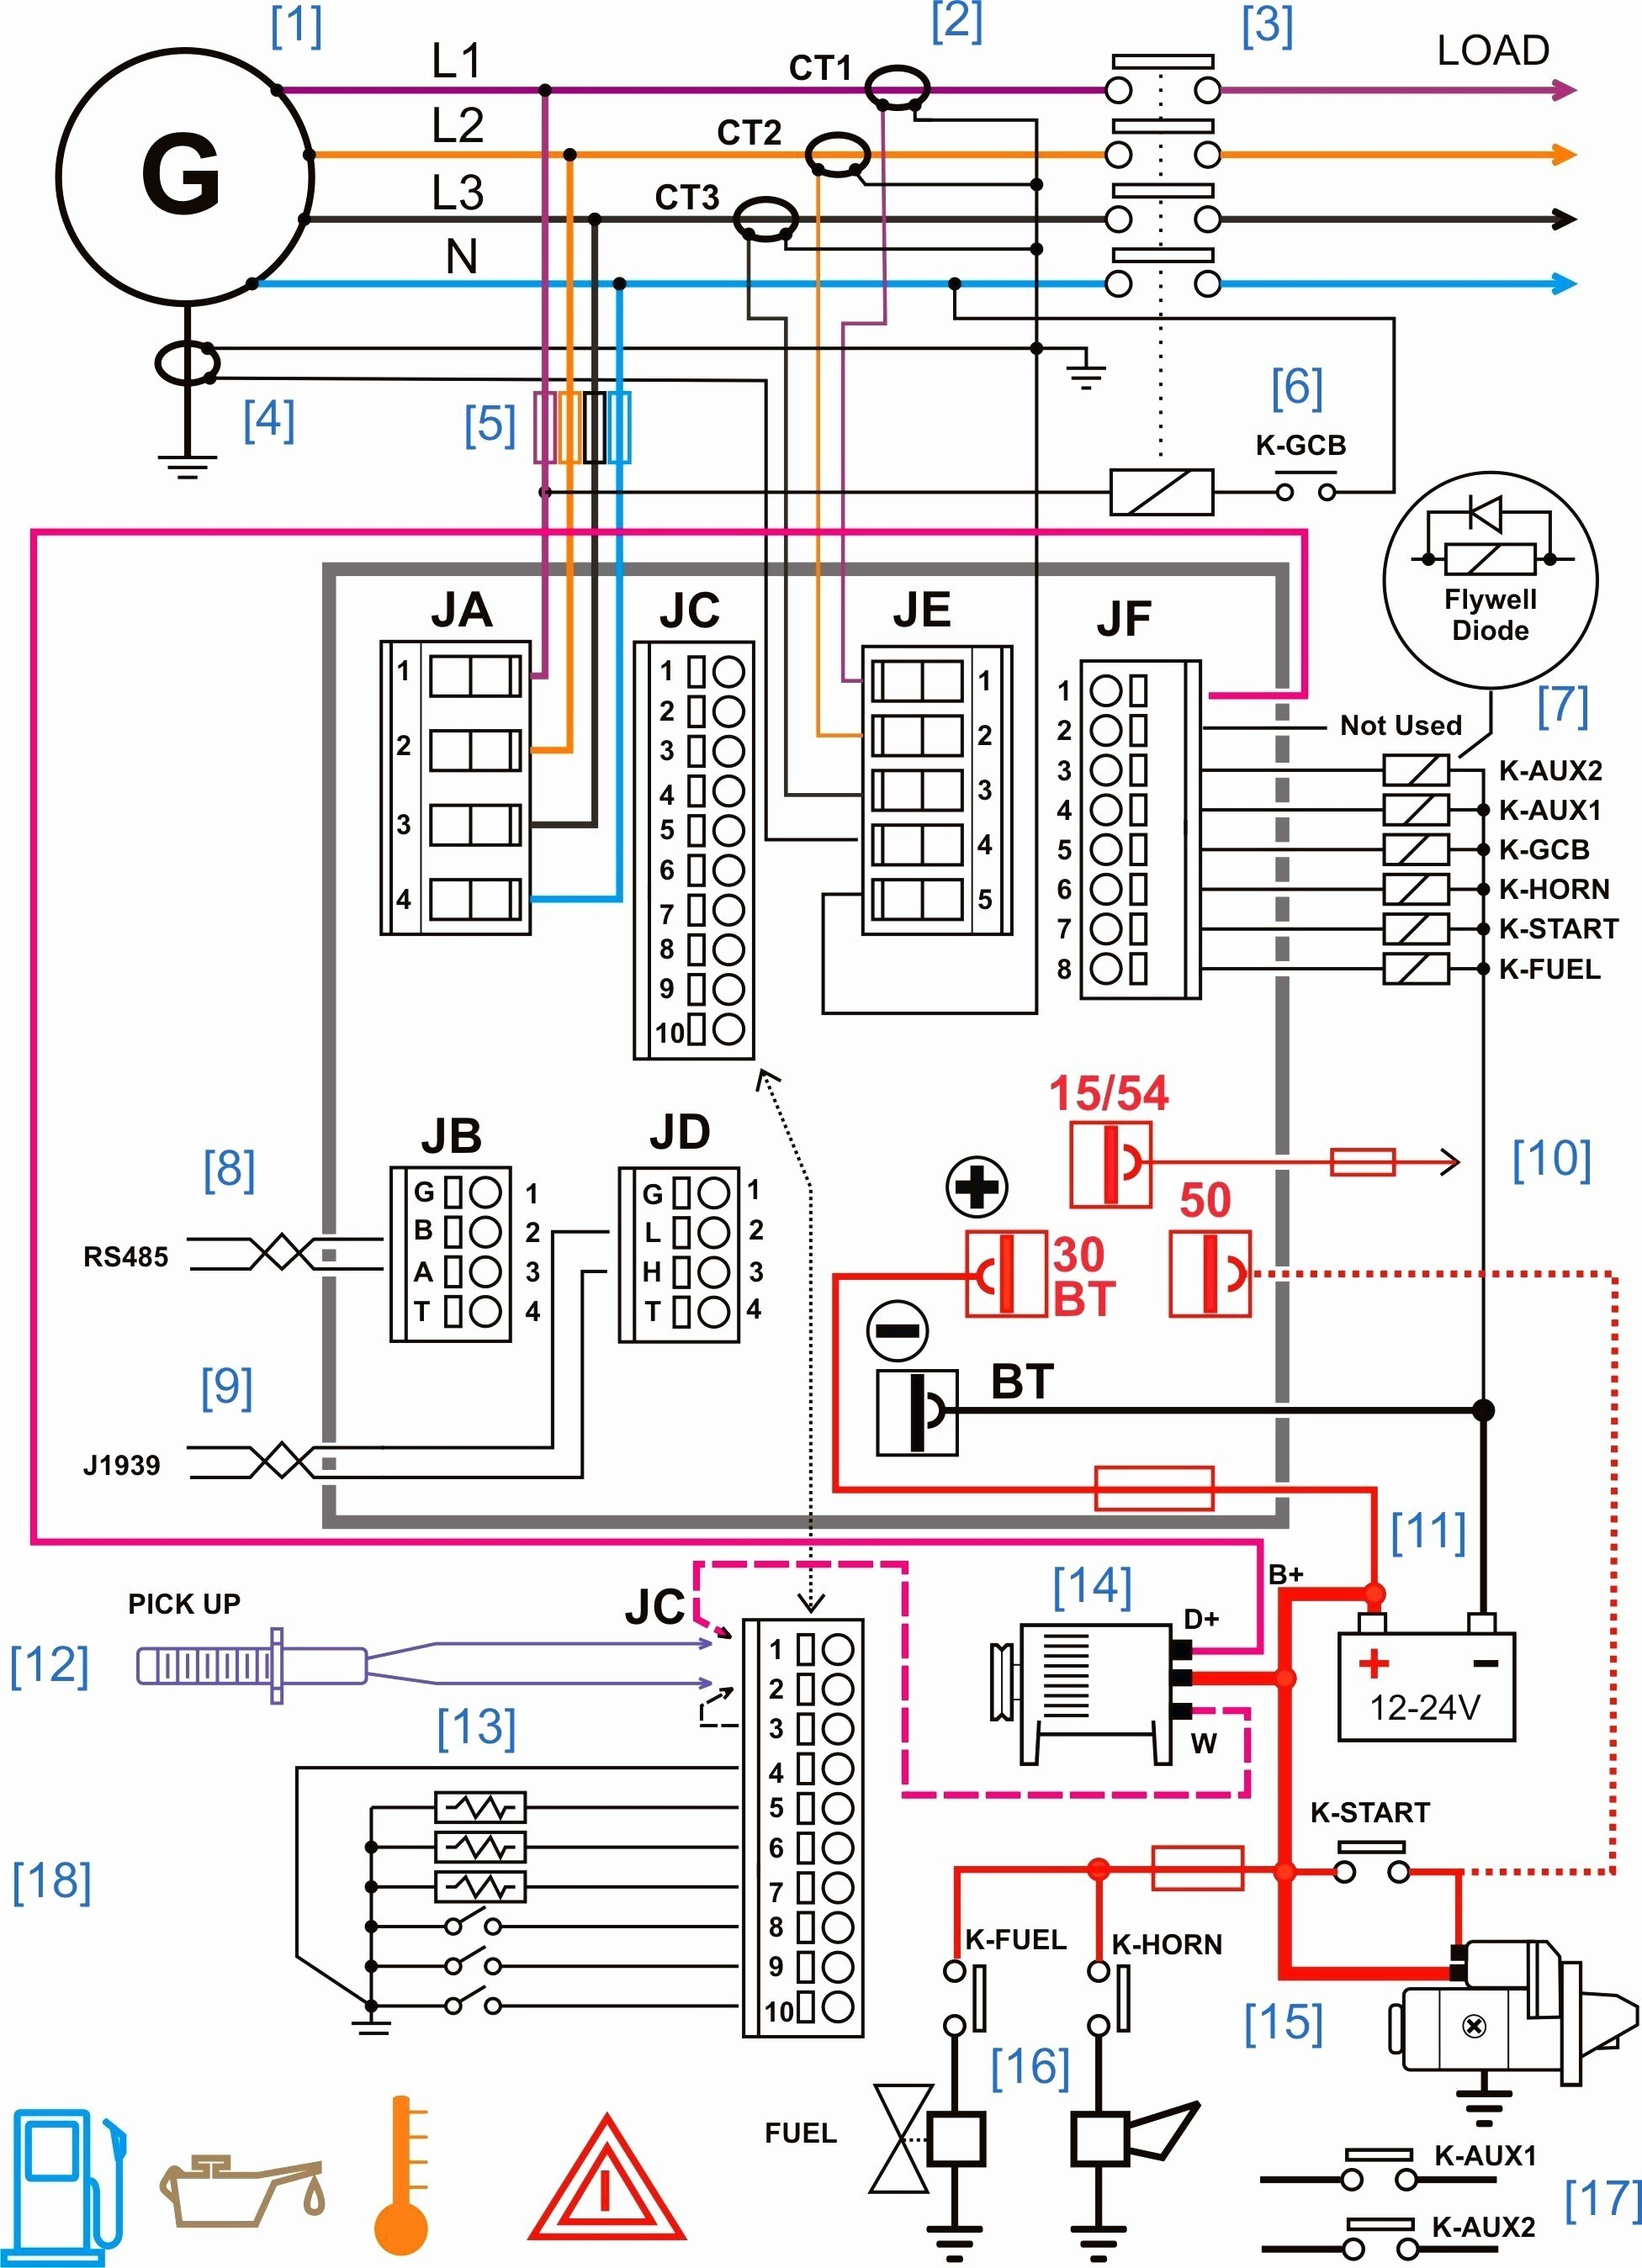 Breaker Box Wiring Diagram Wiring Diagram for Home Breaker Box Refrence Automotive Wiring Of Breaker Box Wiring Diagram